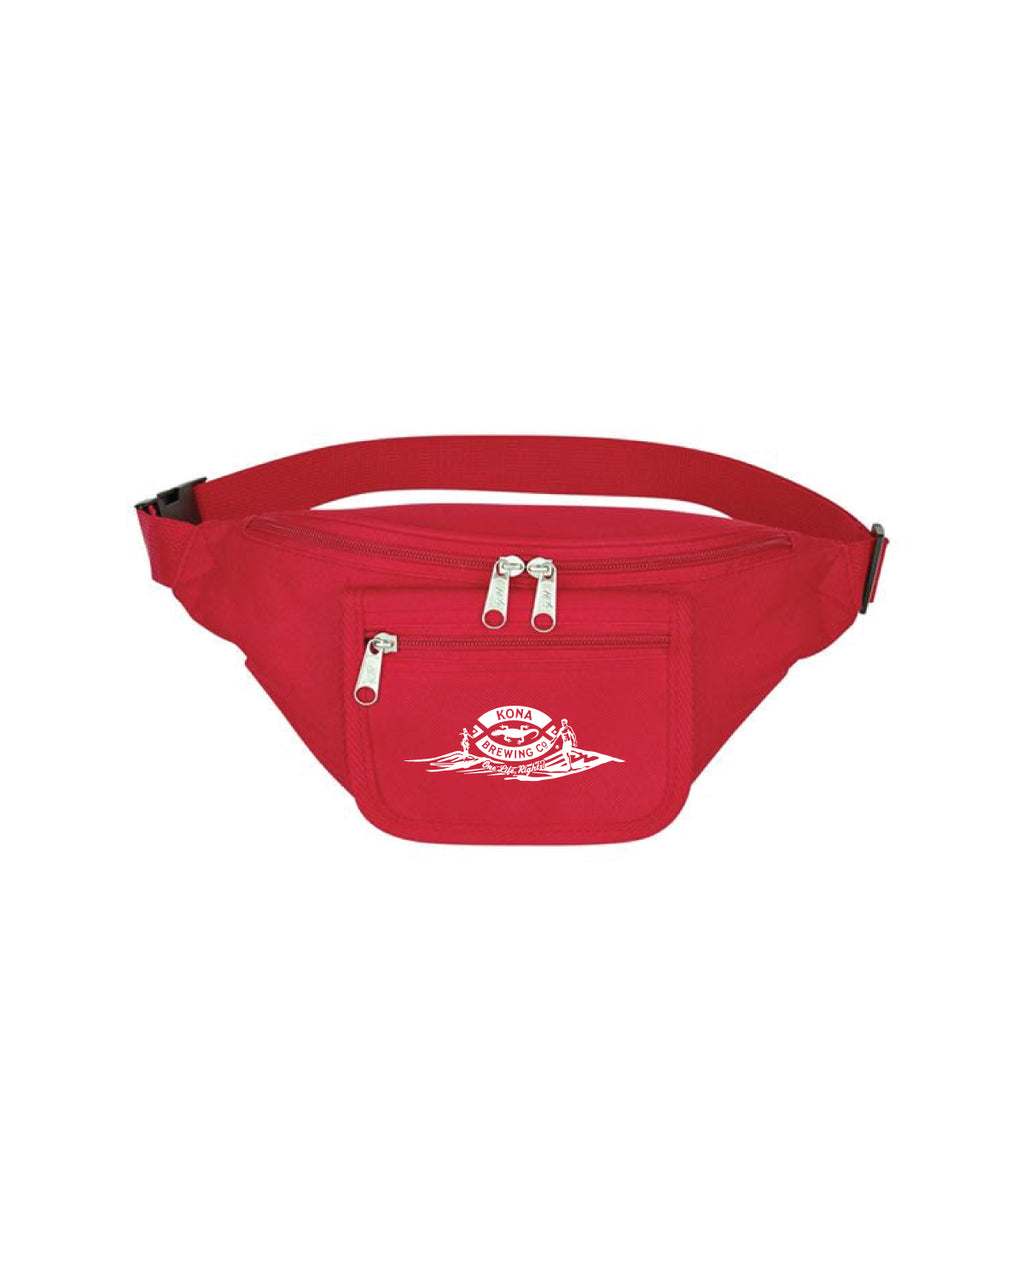 KONA ONE LIFE RIGHT FANNY PACK- RED - Anderson Bros Design and Supply